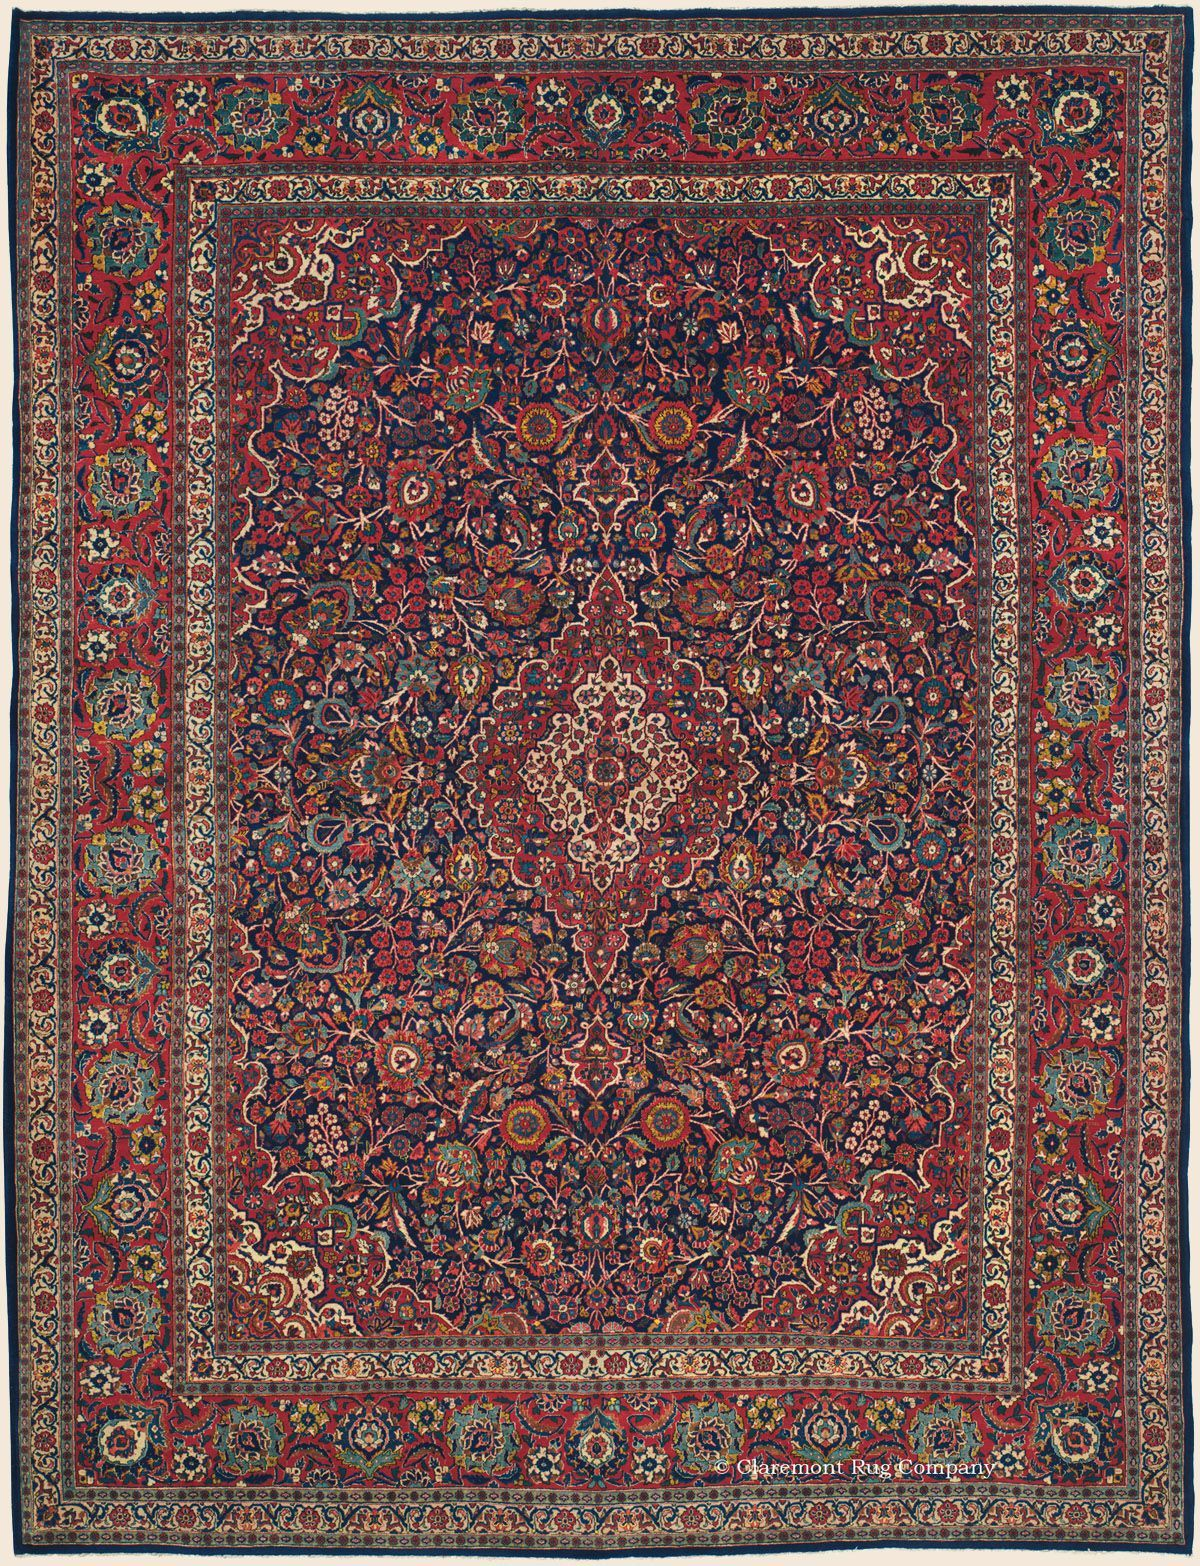 Sorry This Rug is No Longer Available  Claremont Rug Company  Sorry This Rug is No Longer Available  Claremont Rug Company